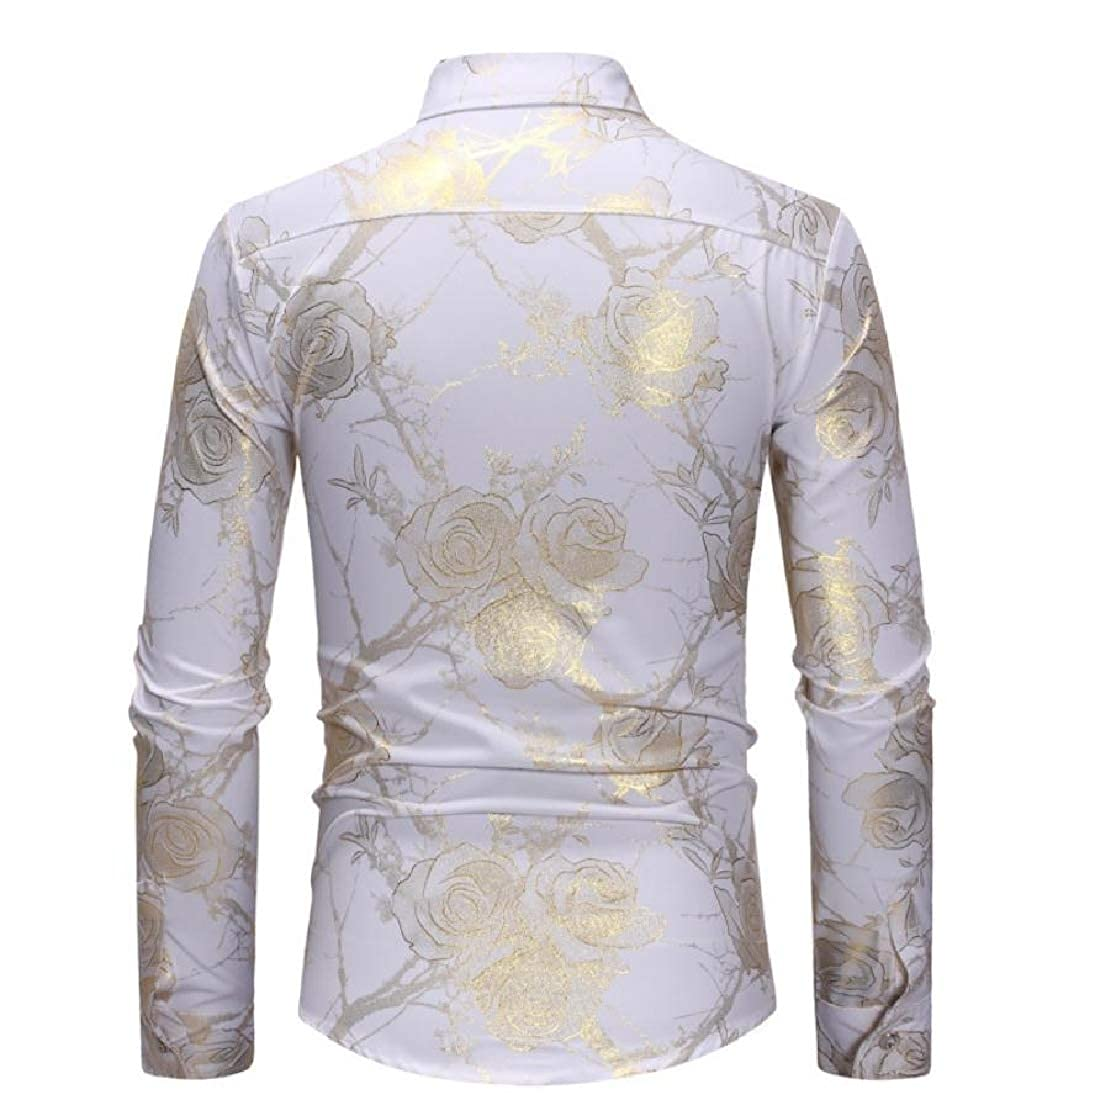 YUNY Mens Business Dress Shirts Floral Printed Tops Button-Down-Shirts White XS